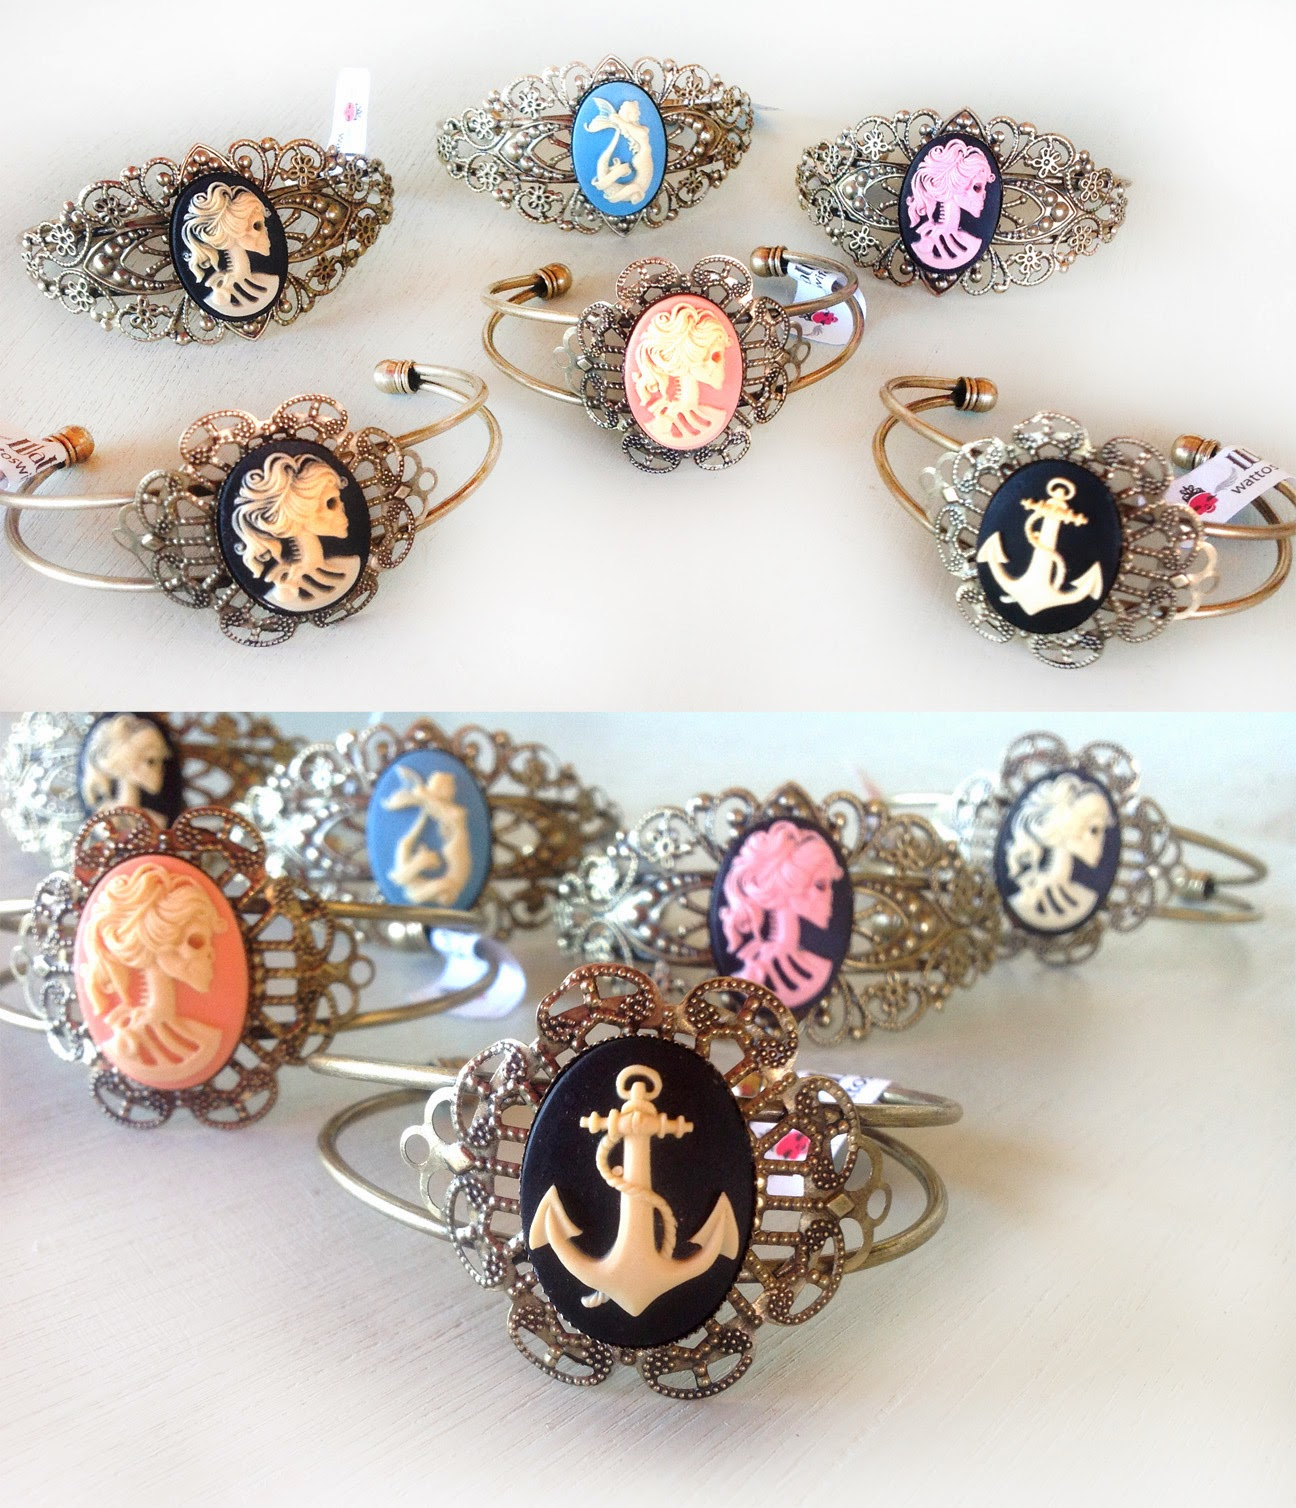 Skull, anchor, mermaid cameos on antique bronze cuff bracelets